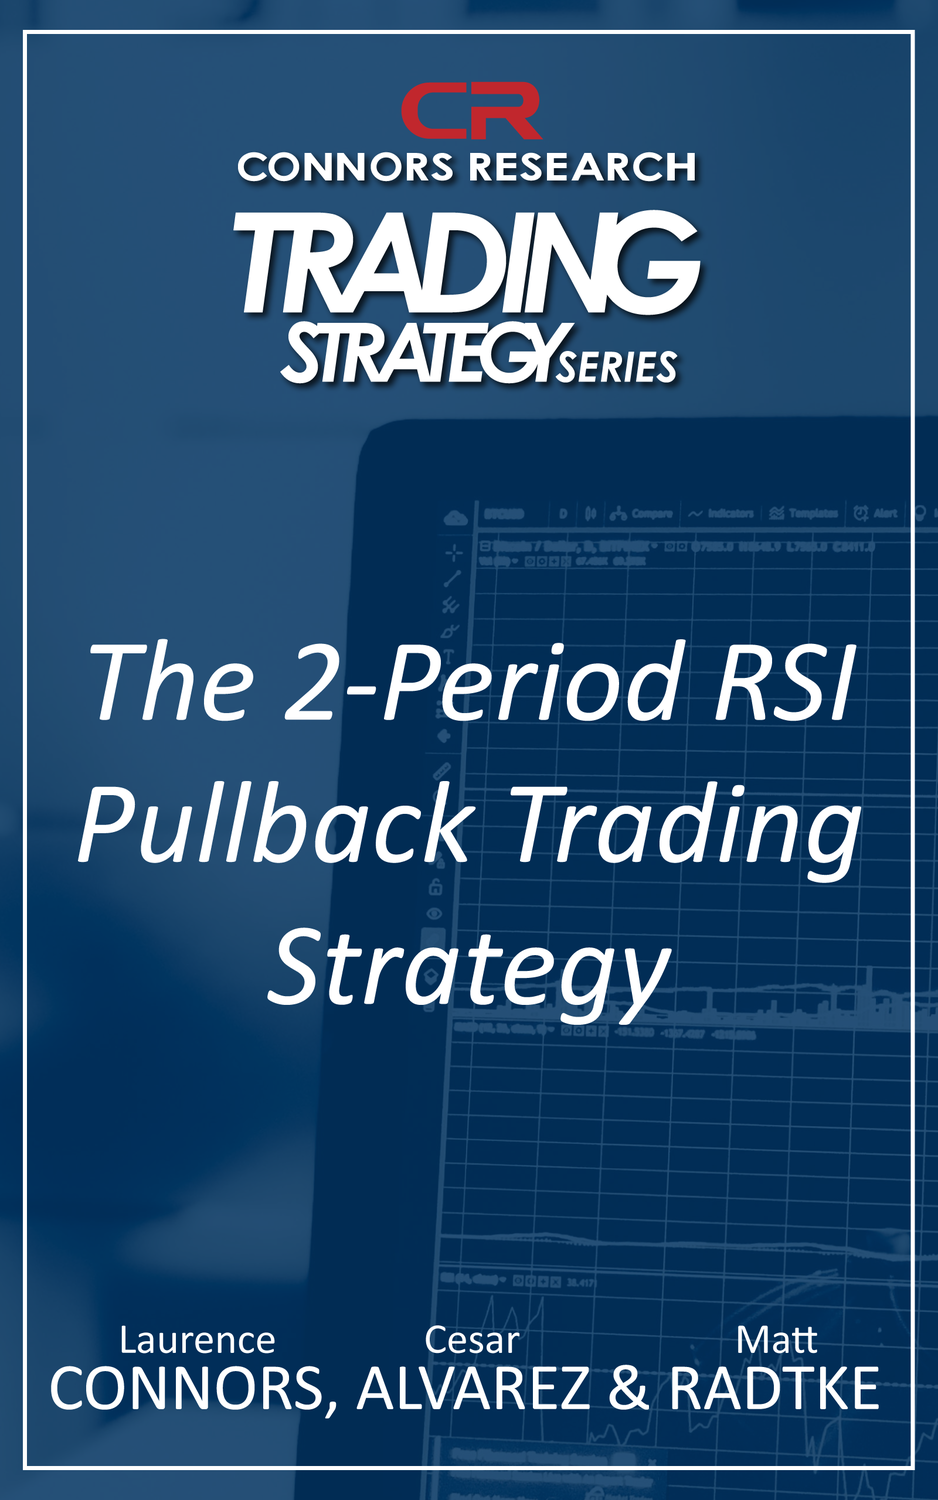 Connors Research Trading Strategy Series: The2‐PeriodRSIPullbackTradingStrategy